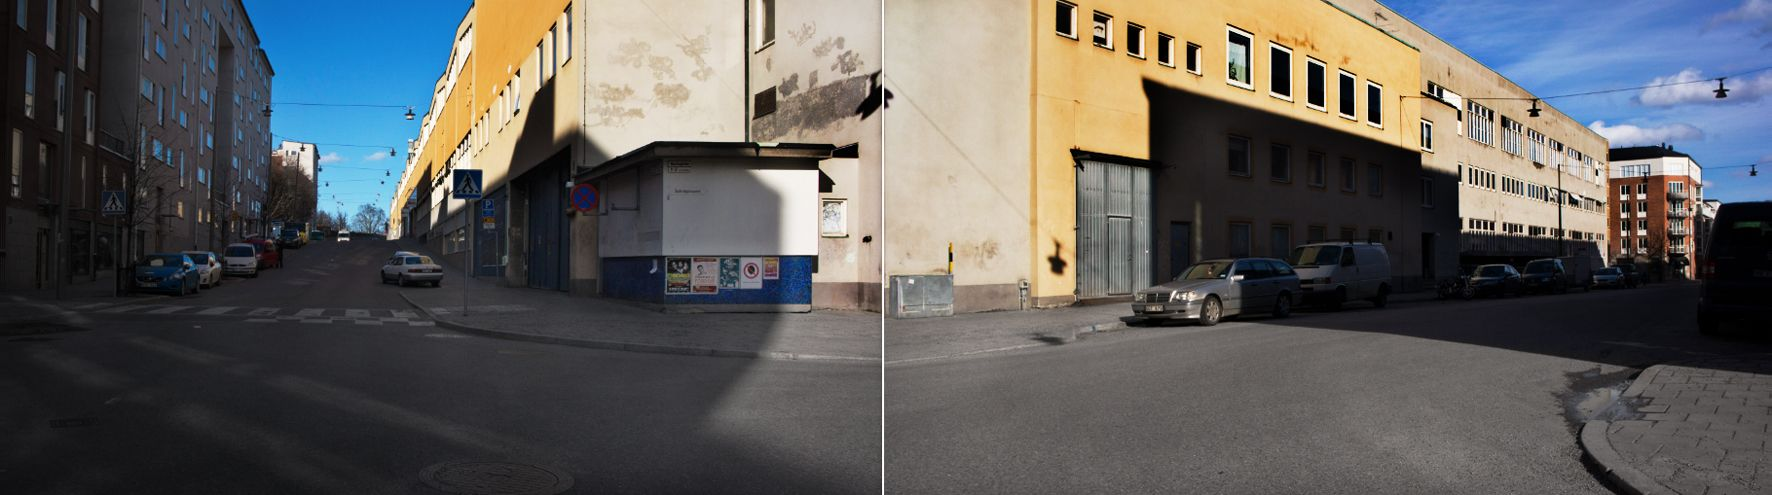 double-frame panorama. södermalm, stockholm.